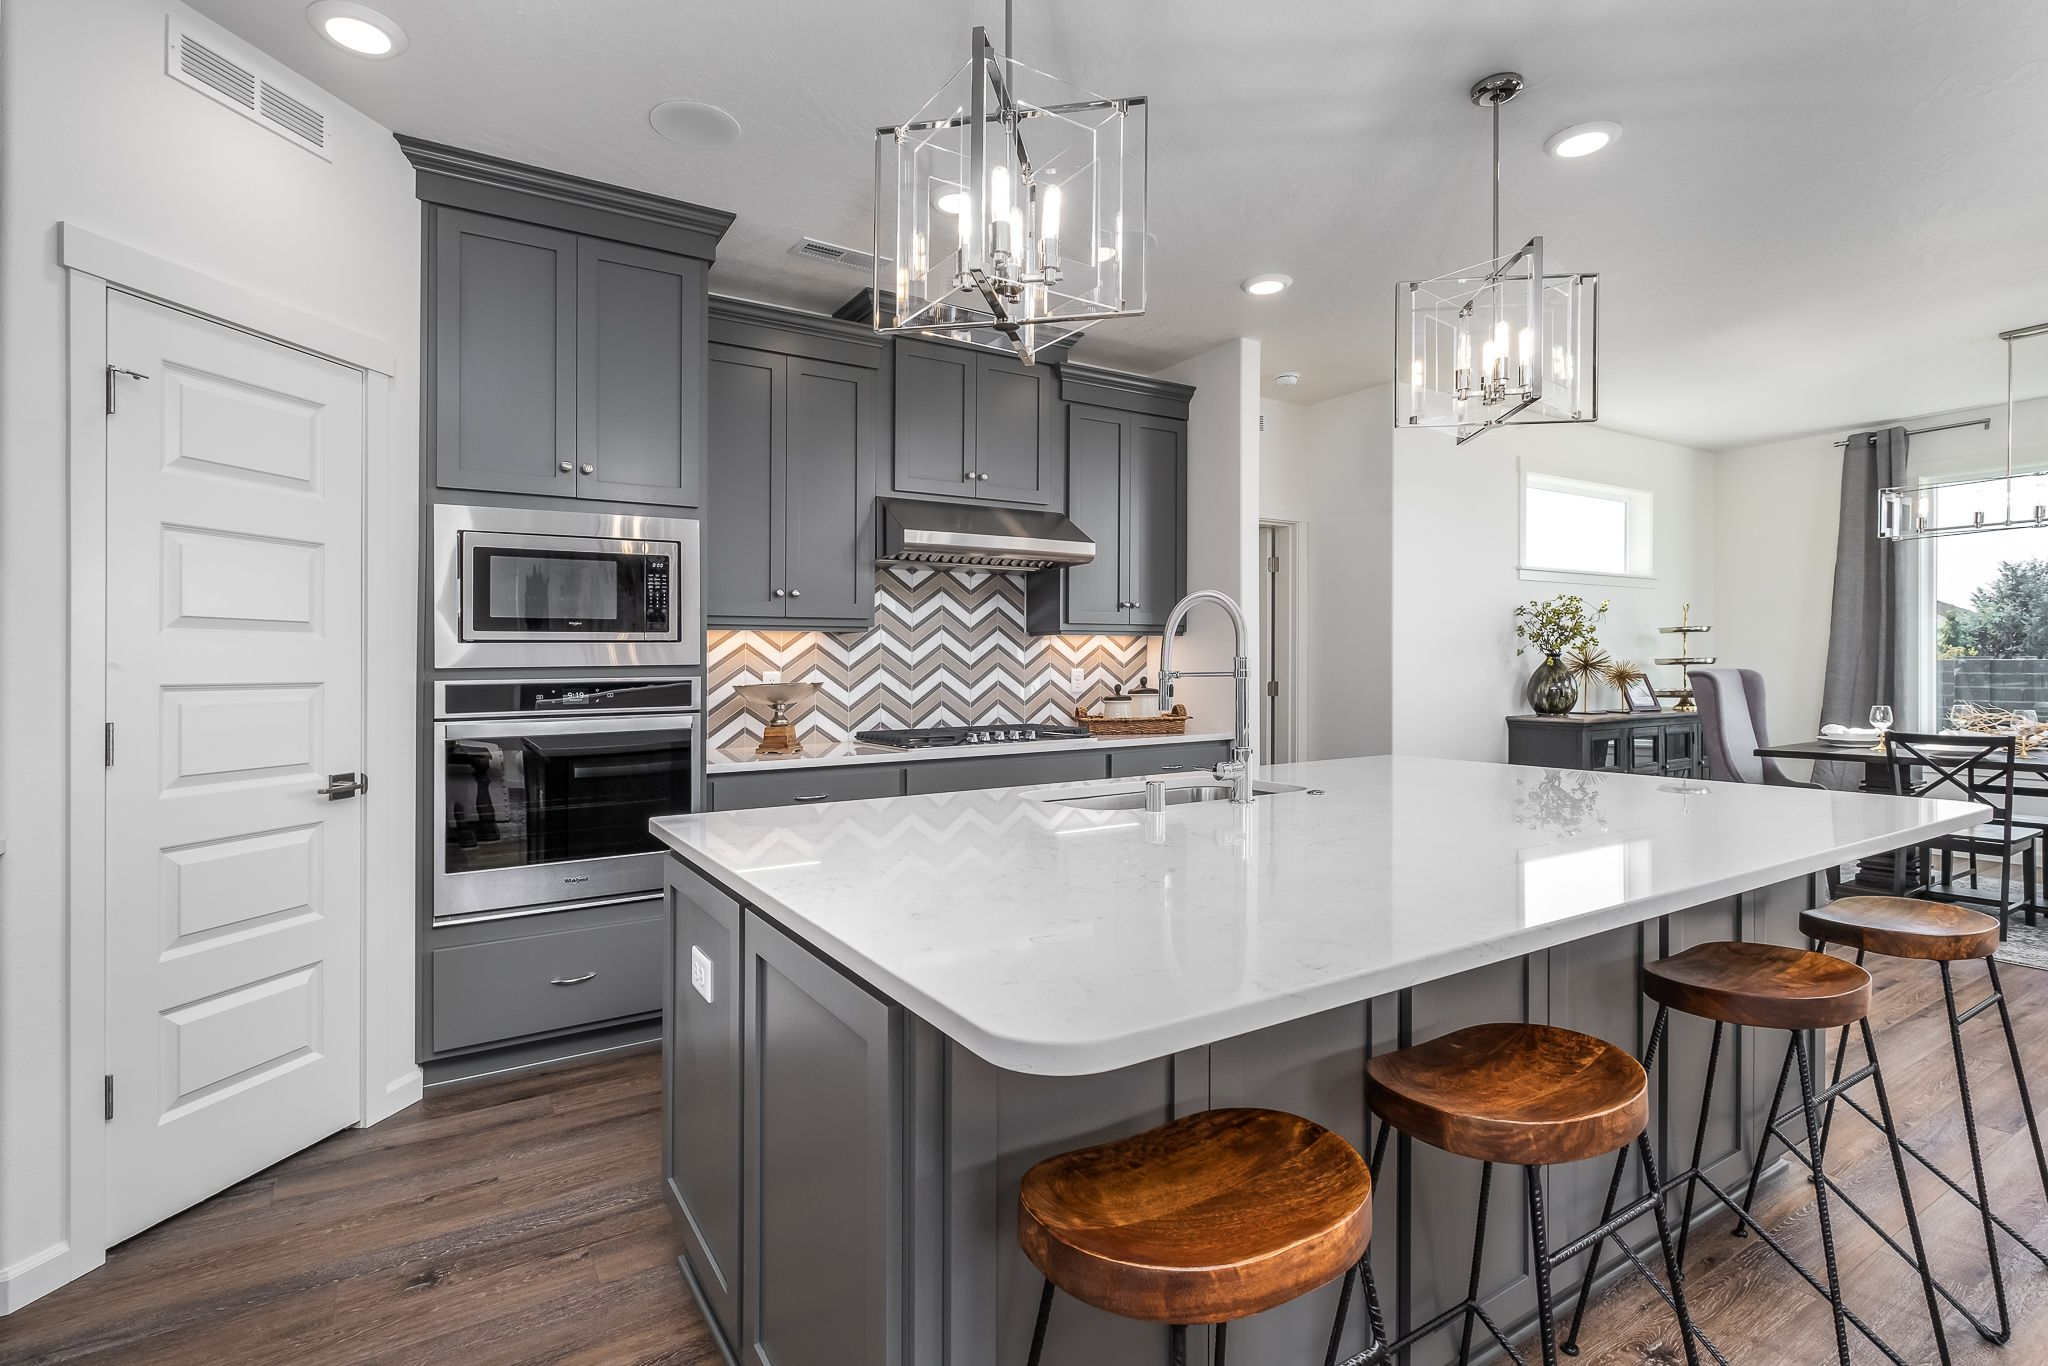 Kitchen featured in the Whidbey By New Tradition Homes in Richland, WA